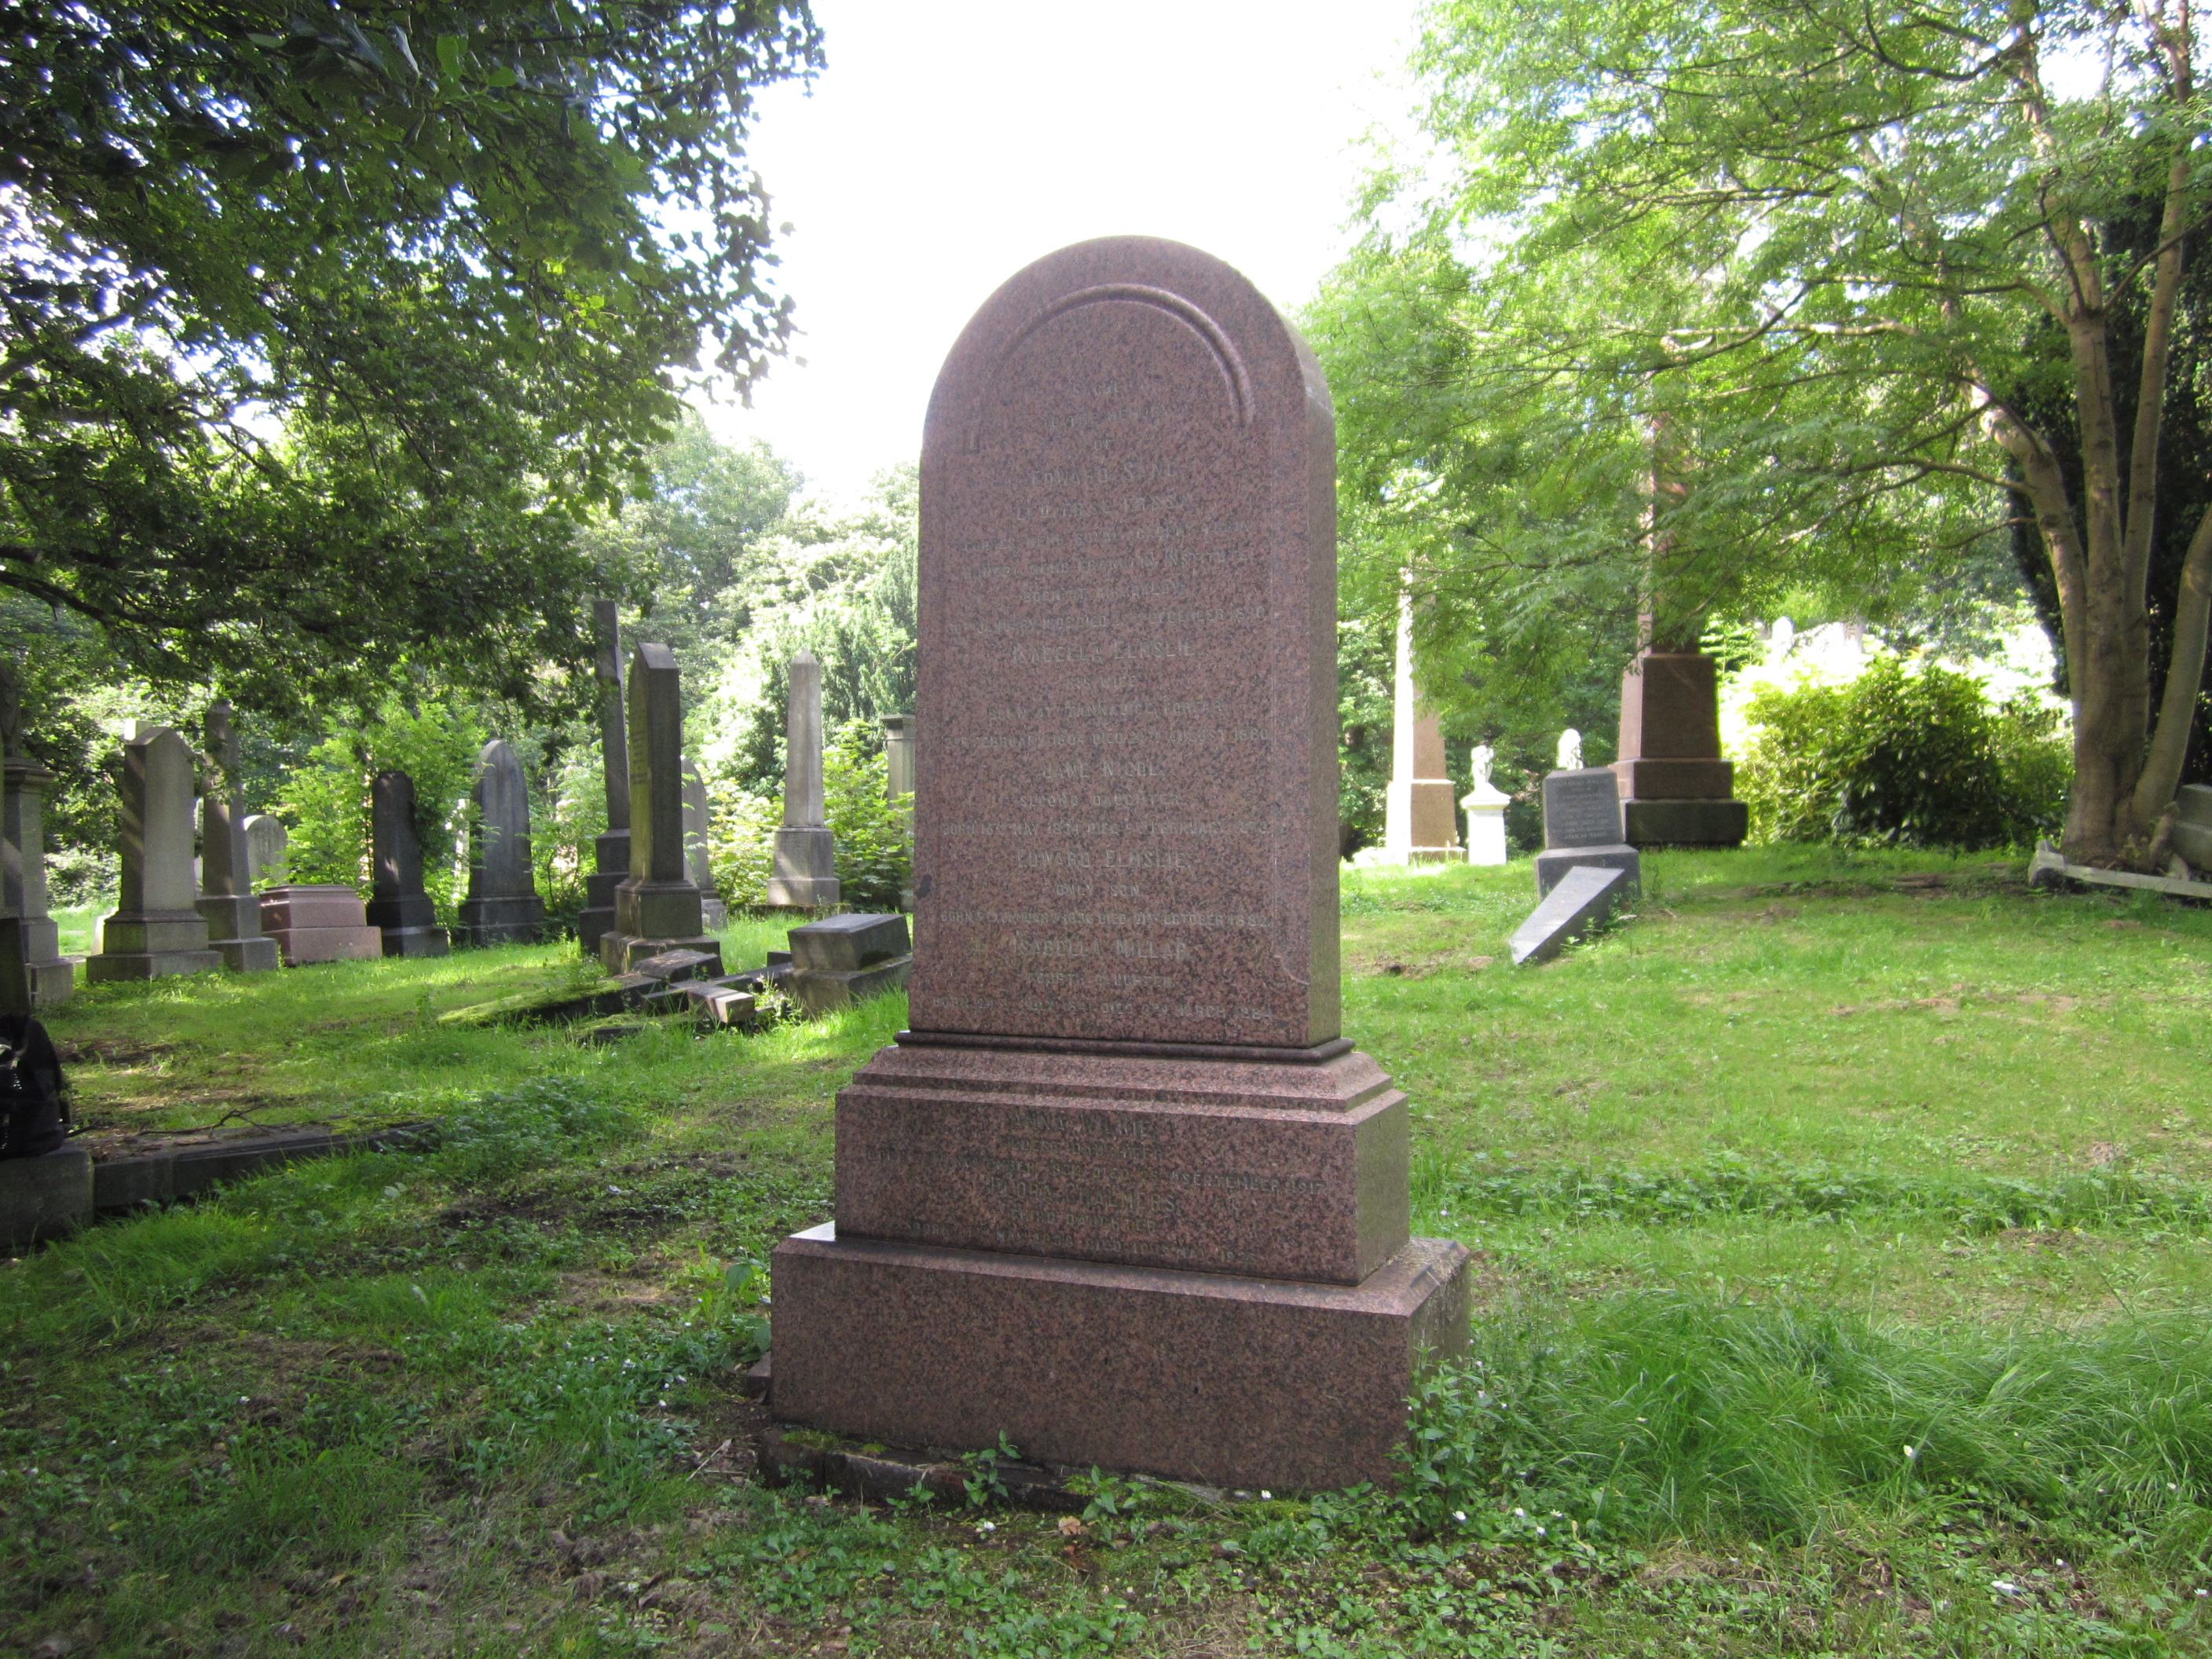 [Image: Grave_of_Edward_Sang_(1805-1890)_in_Newi...nburgh.jpg]